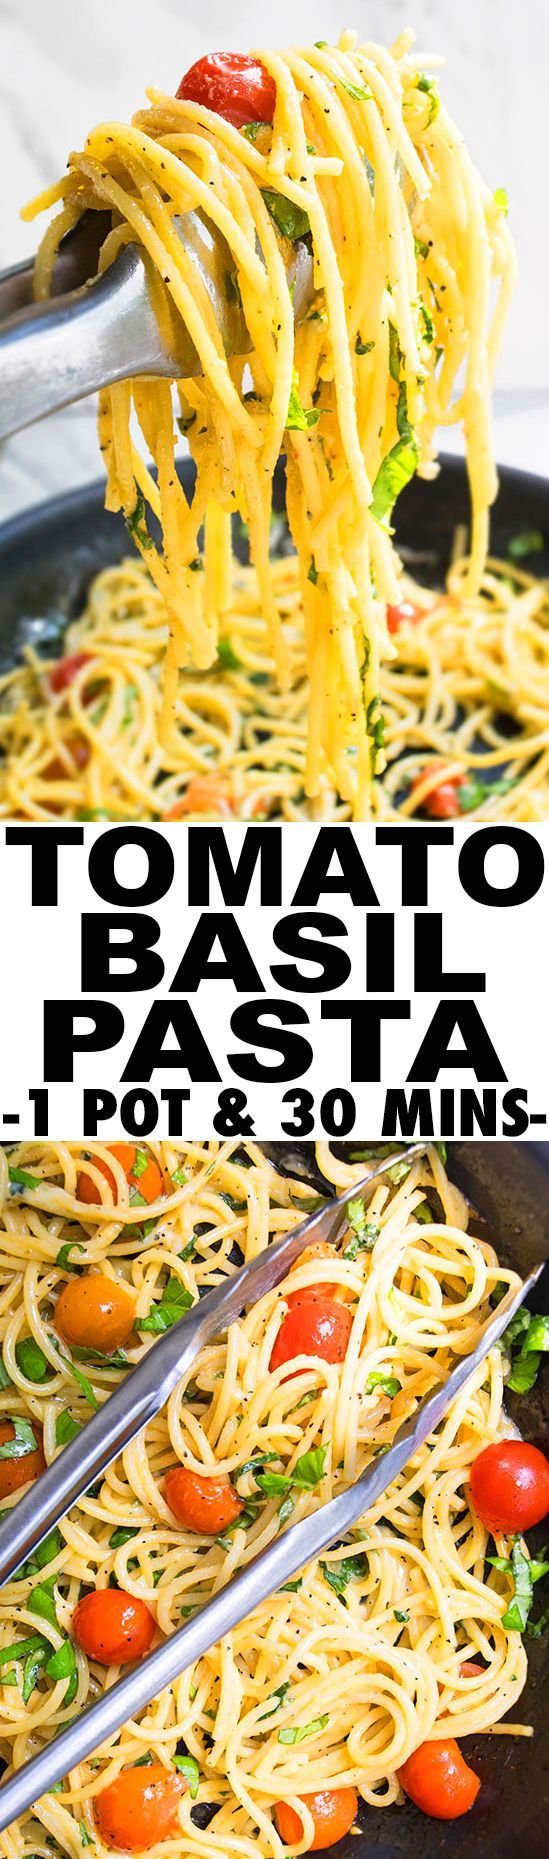 Quick and easy one pot TOMATO BASIL PASTA recipe is a simple 30 minute dinner idea. This vegetarian pasta recipe is creamy, flavorful and made with simple ingredients and the perfect easy weeknight meal. From cakewhiz.com